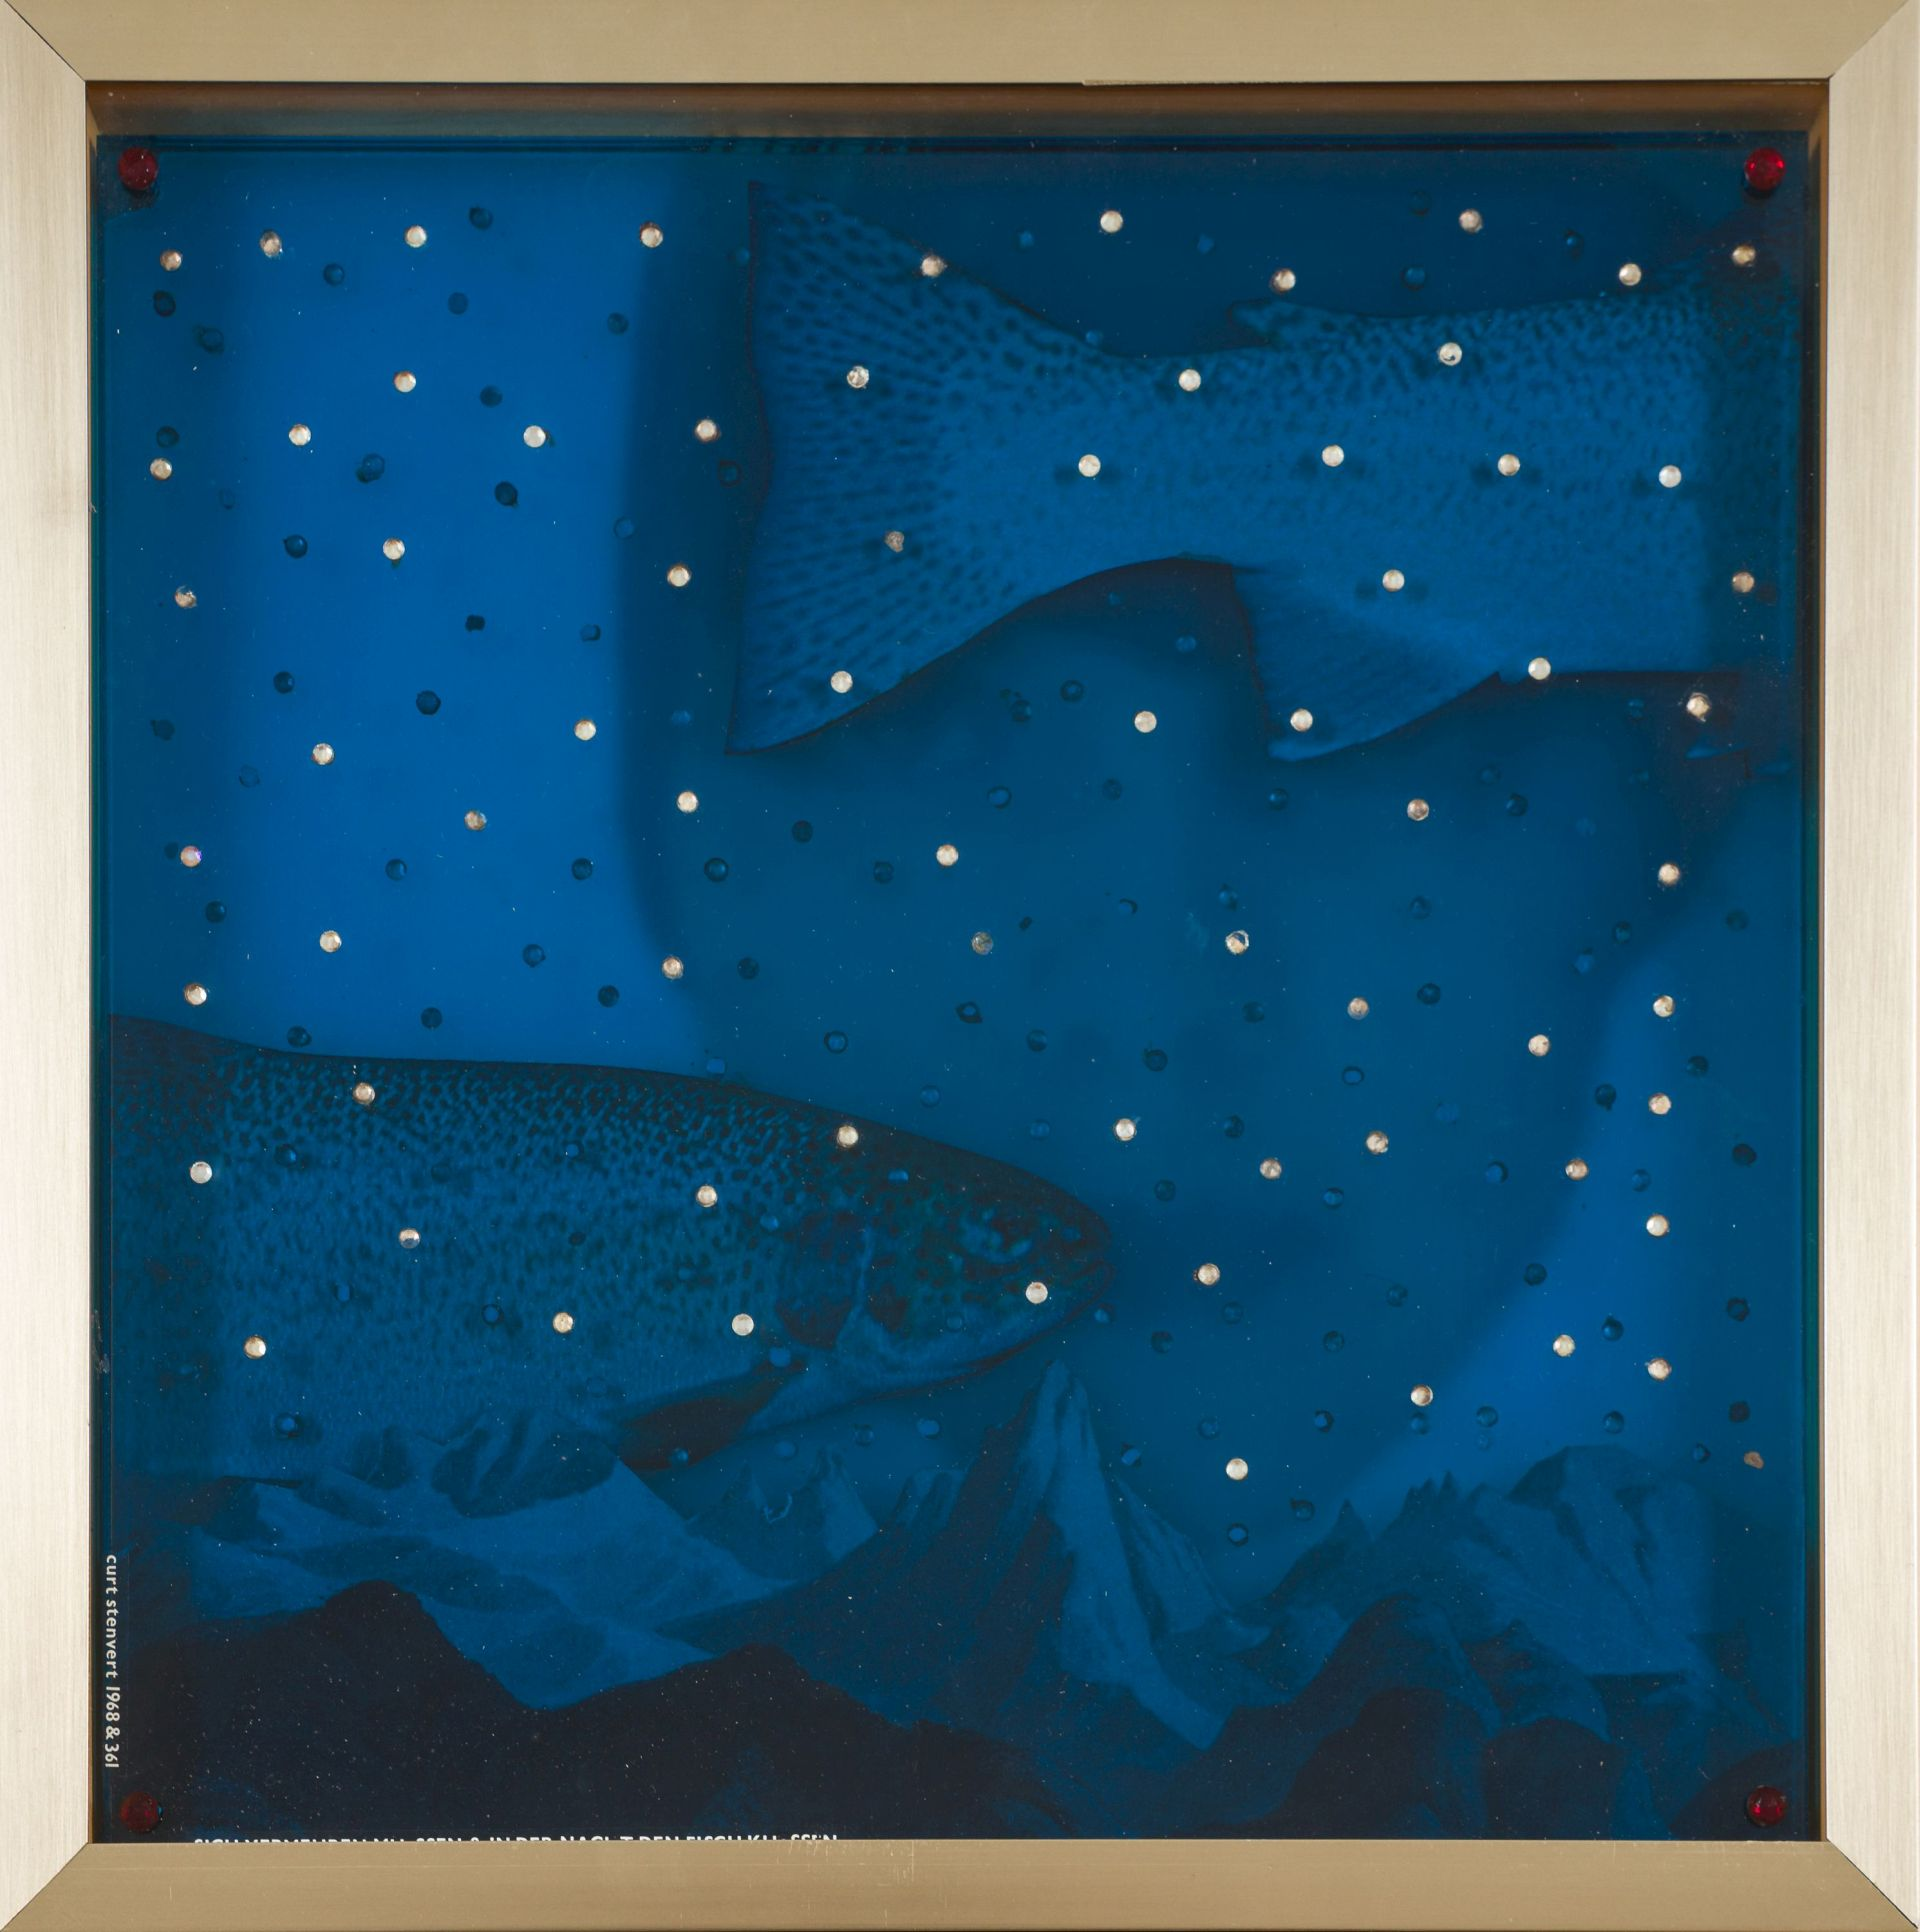 Curt Stenvert-Having to reproduce and kiss the Fish at Night